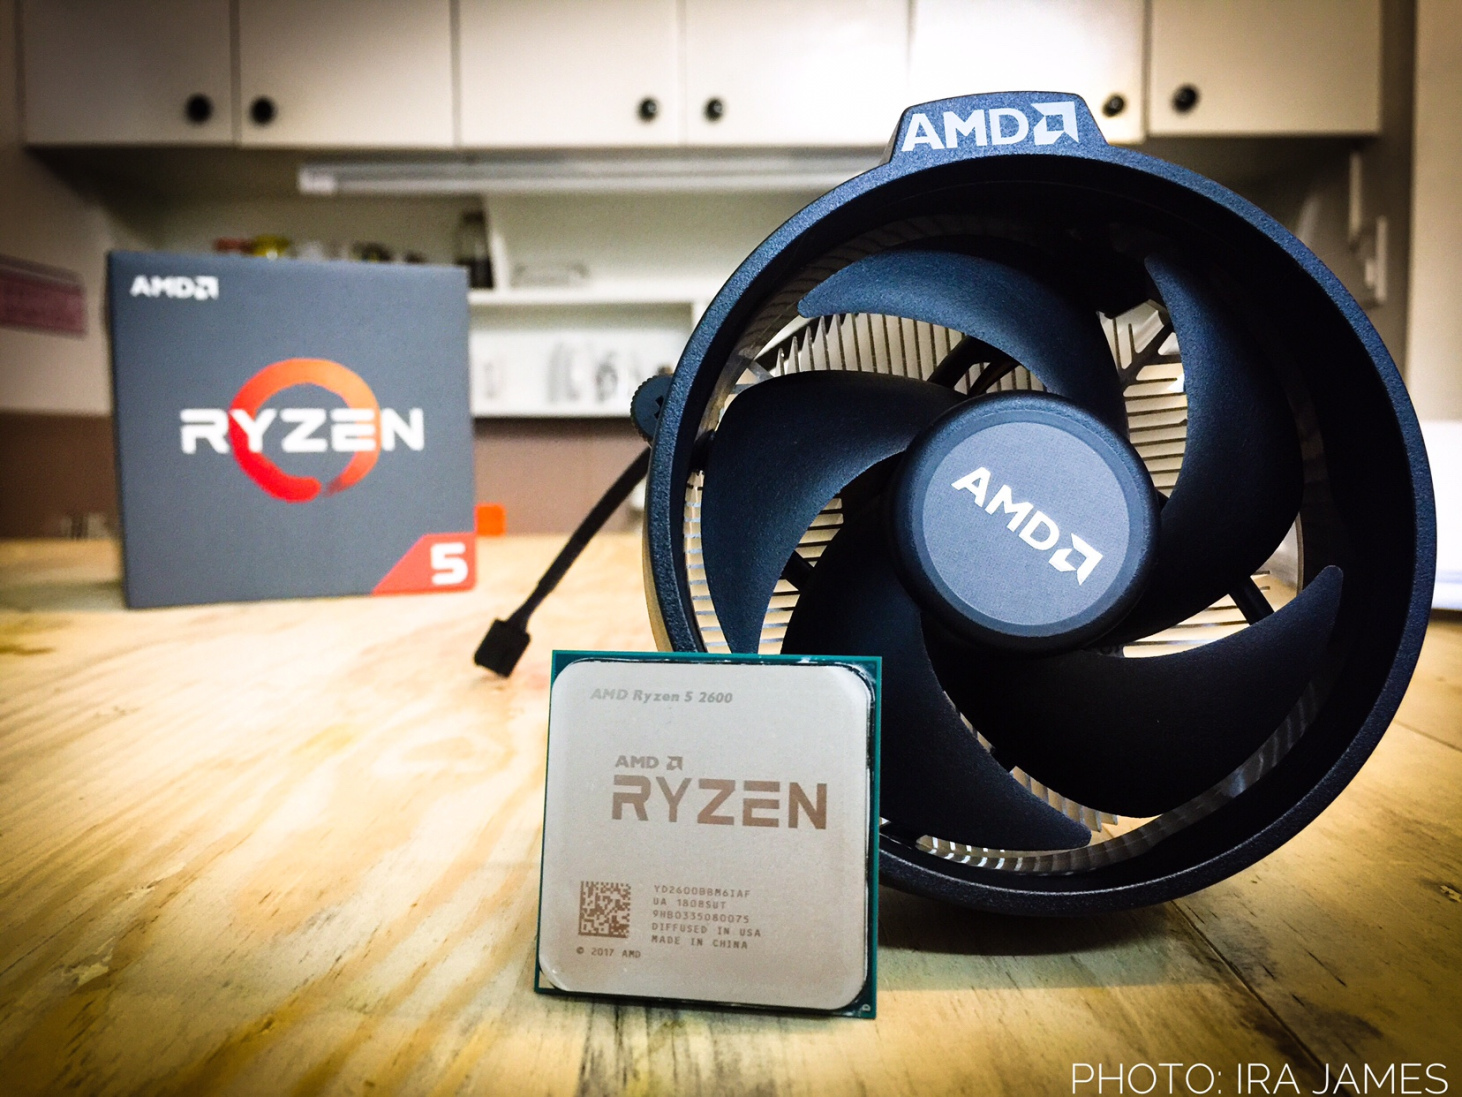 PC HARDWARE | Ryzen 5 2600 performance and overclocking